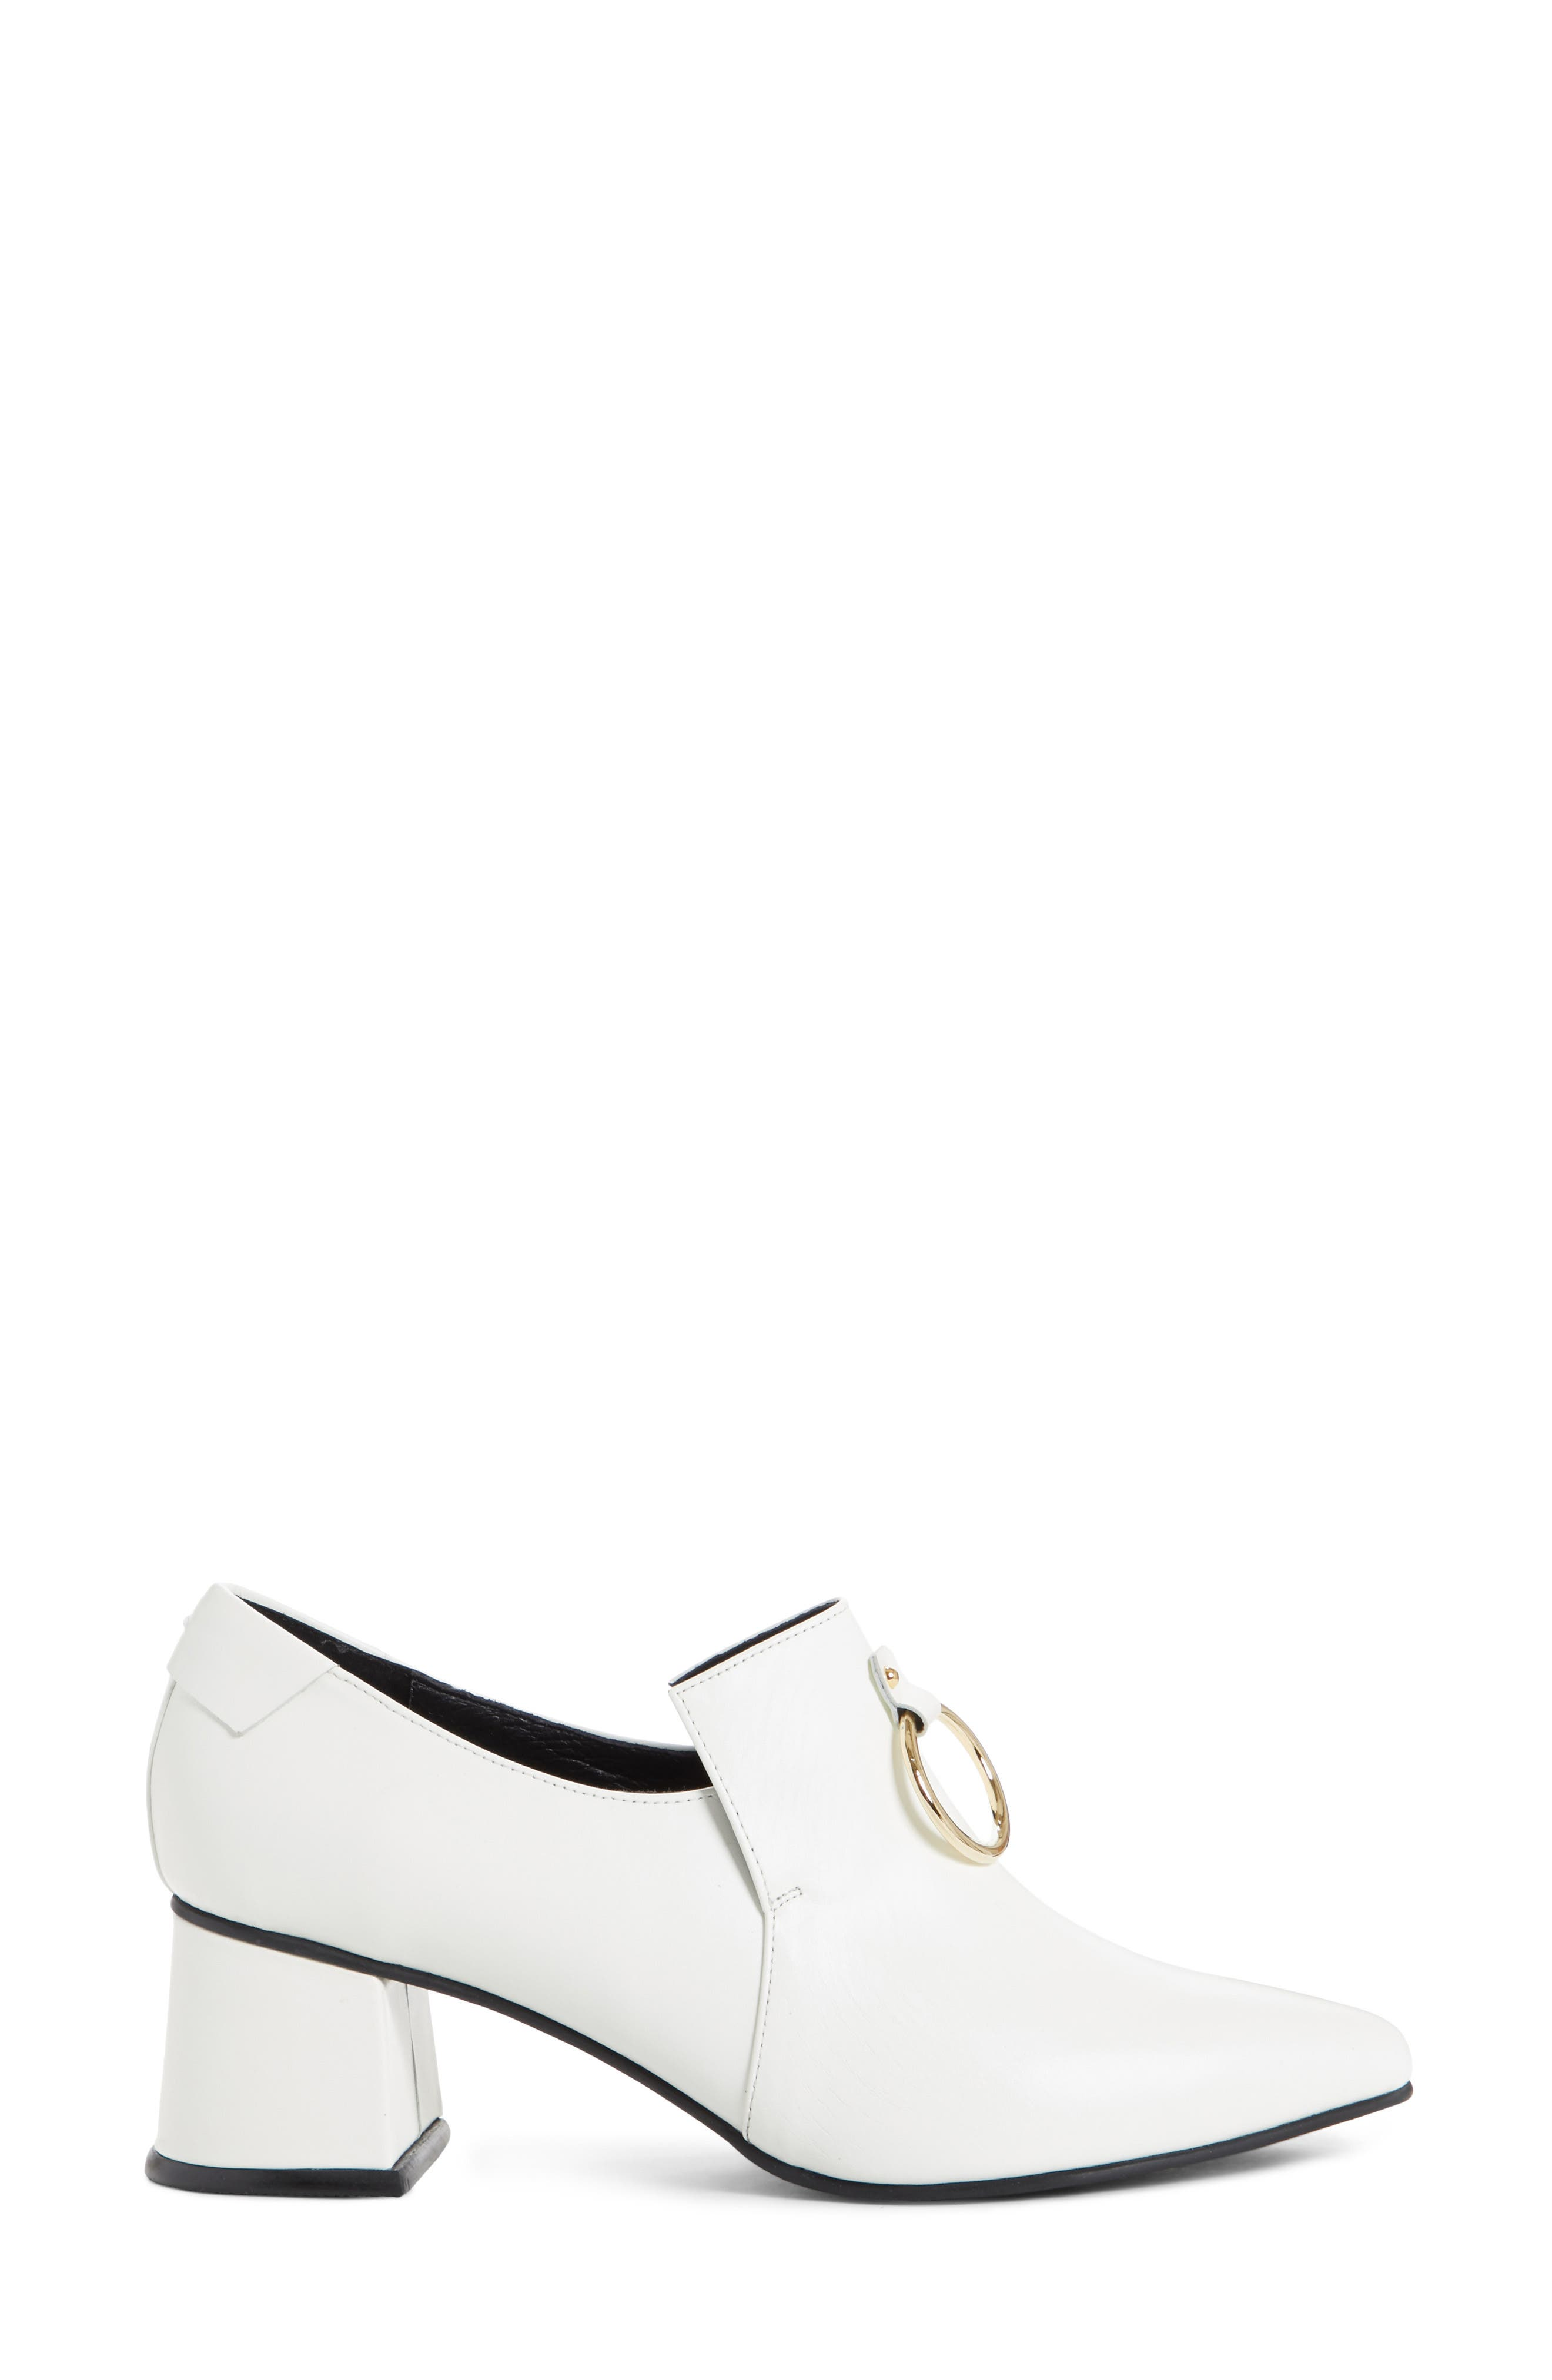 Ring Middle Loafer Pump,                             Alternate thumbnail 3, color,                             100